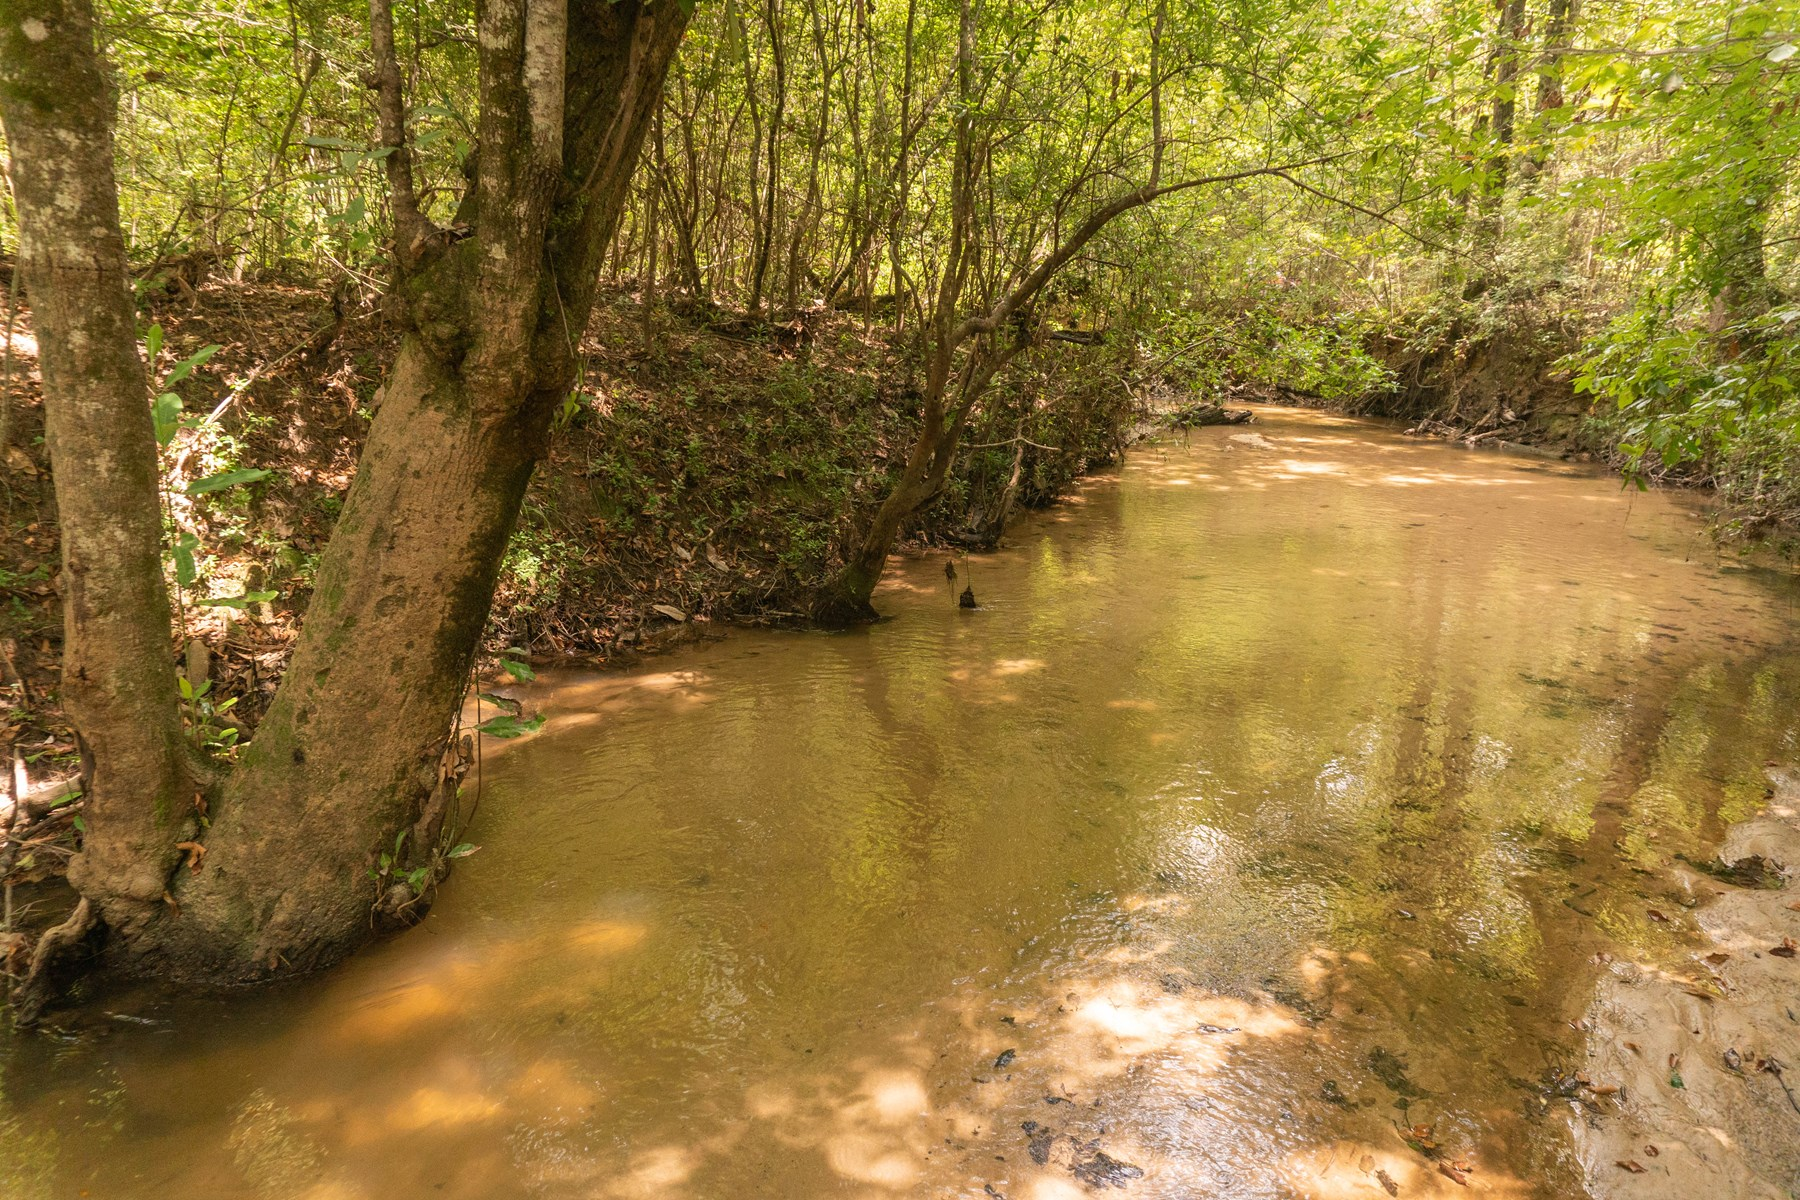 SECLUDED HUNTING LAND NEAR BOTH LAKES AND NATIONAL FOREST